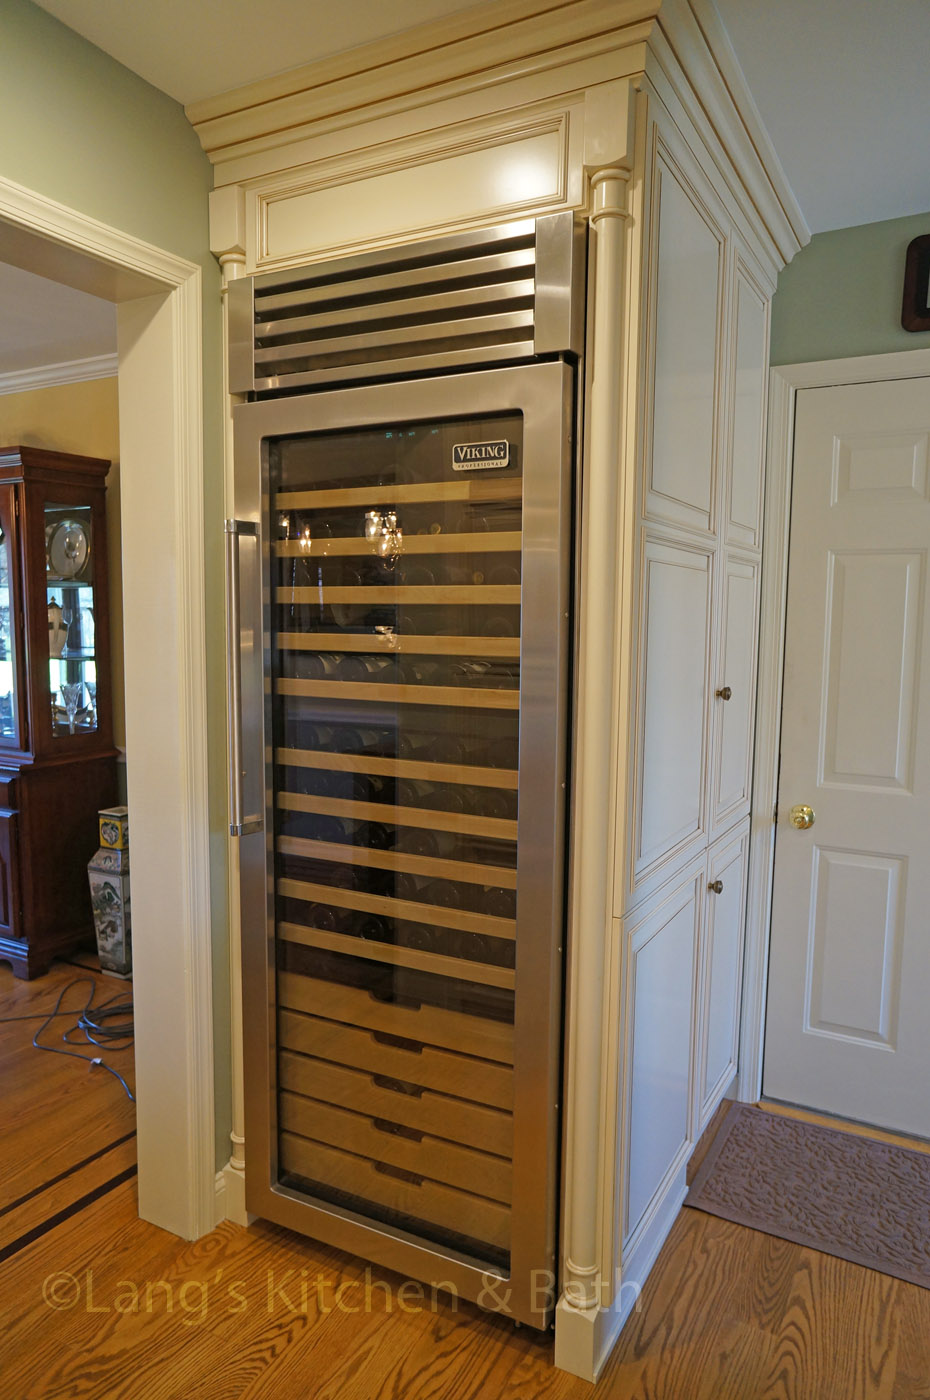 Large beverage refrigerator